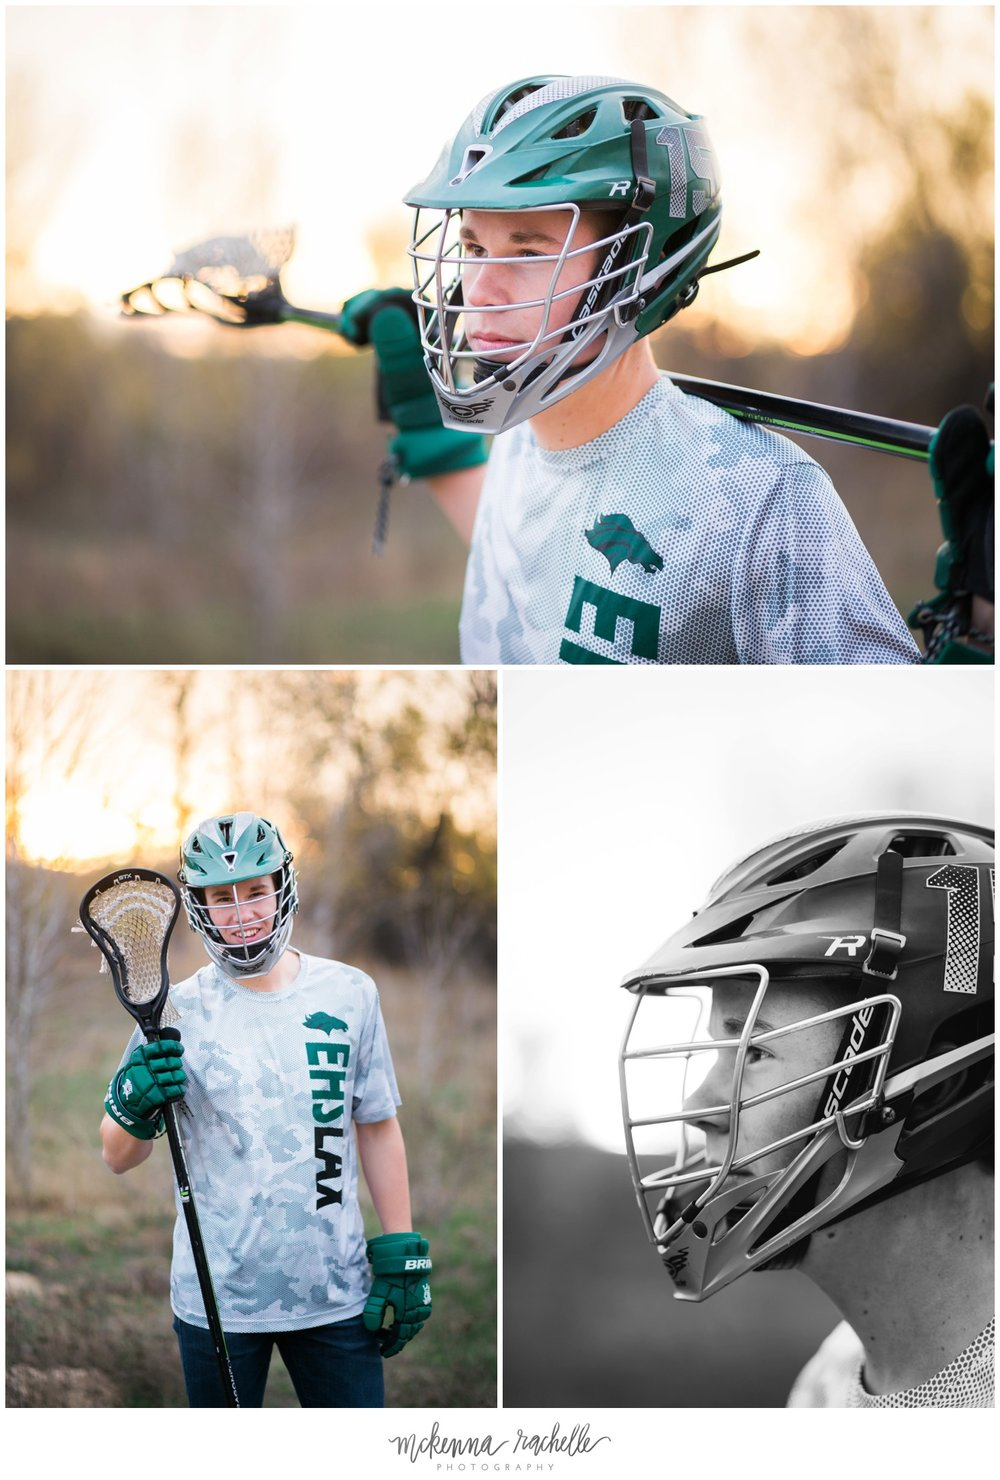 Eagle High School lacrosse player takes senior photos with McKenna Rachelle Photography